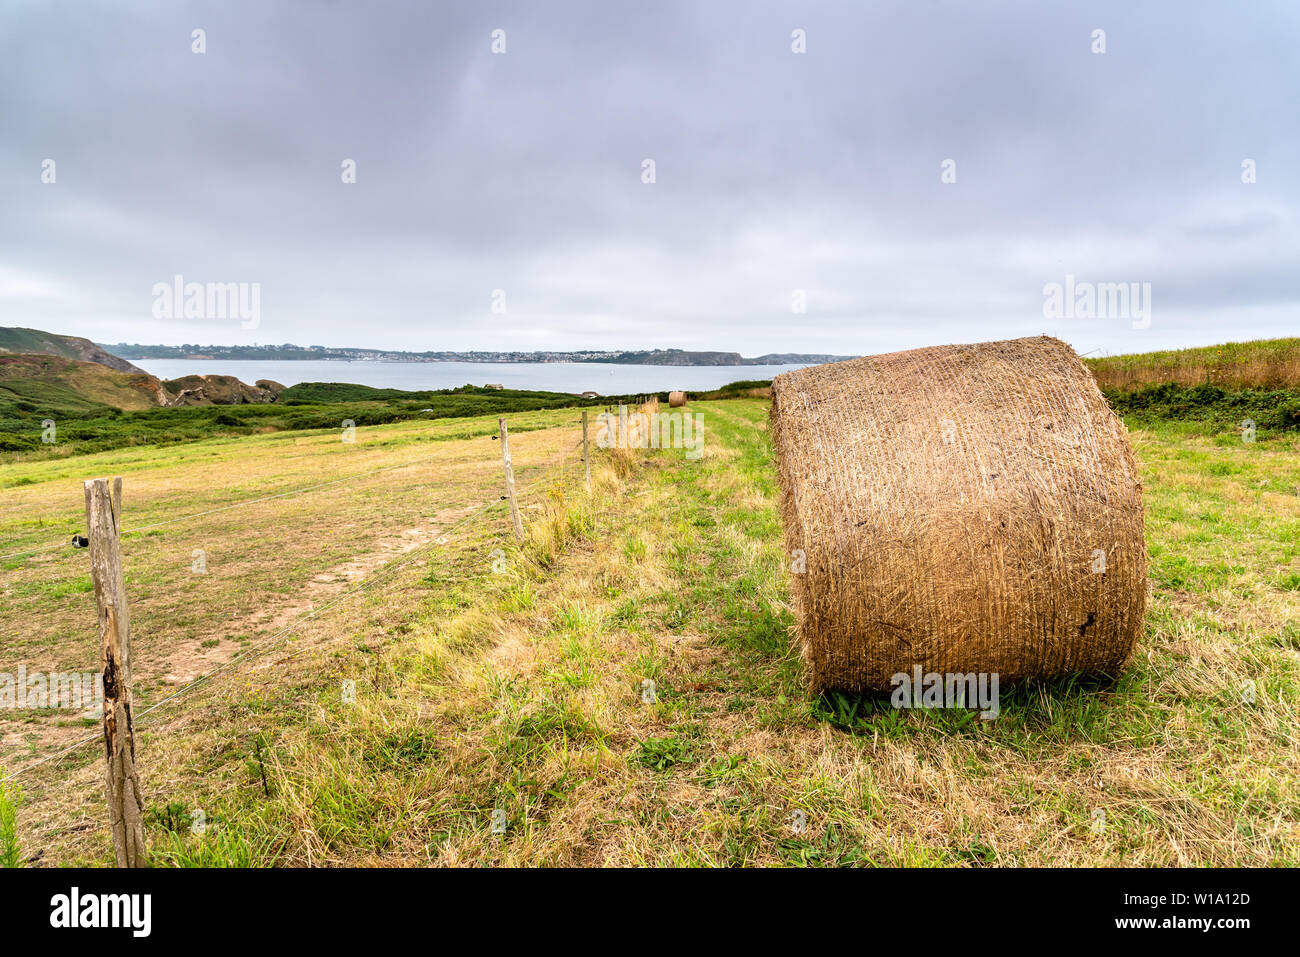 Field with hay bales after harvest in summer against cloudy sky. Copy space Stock Photo